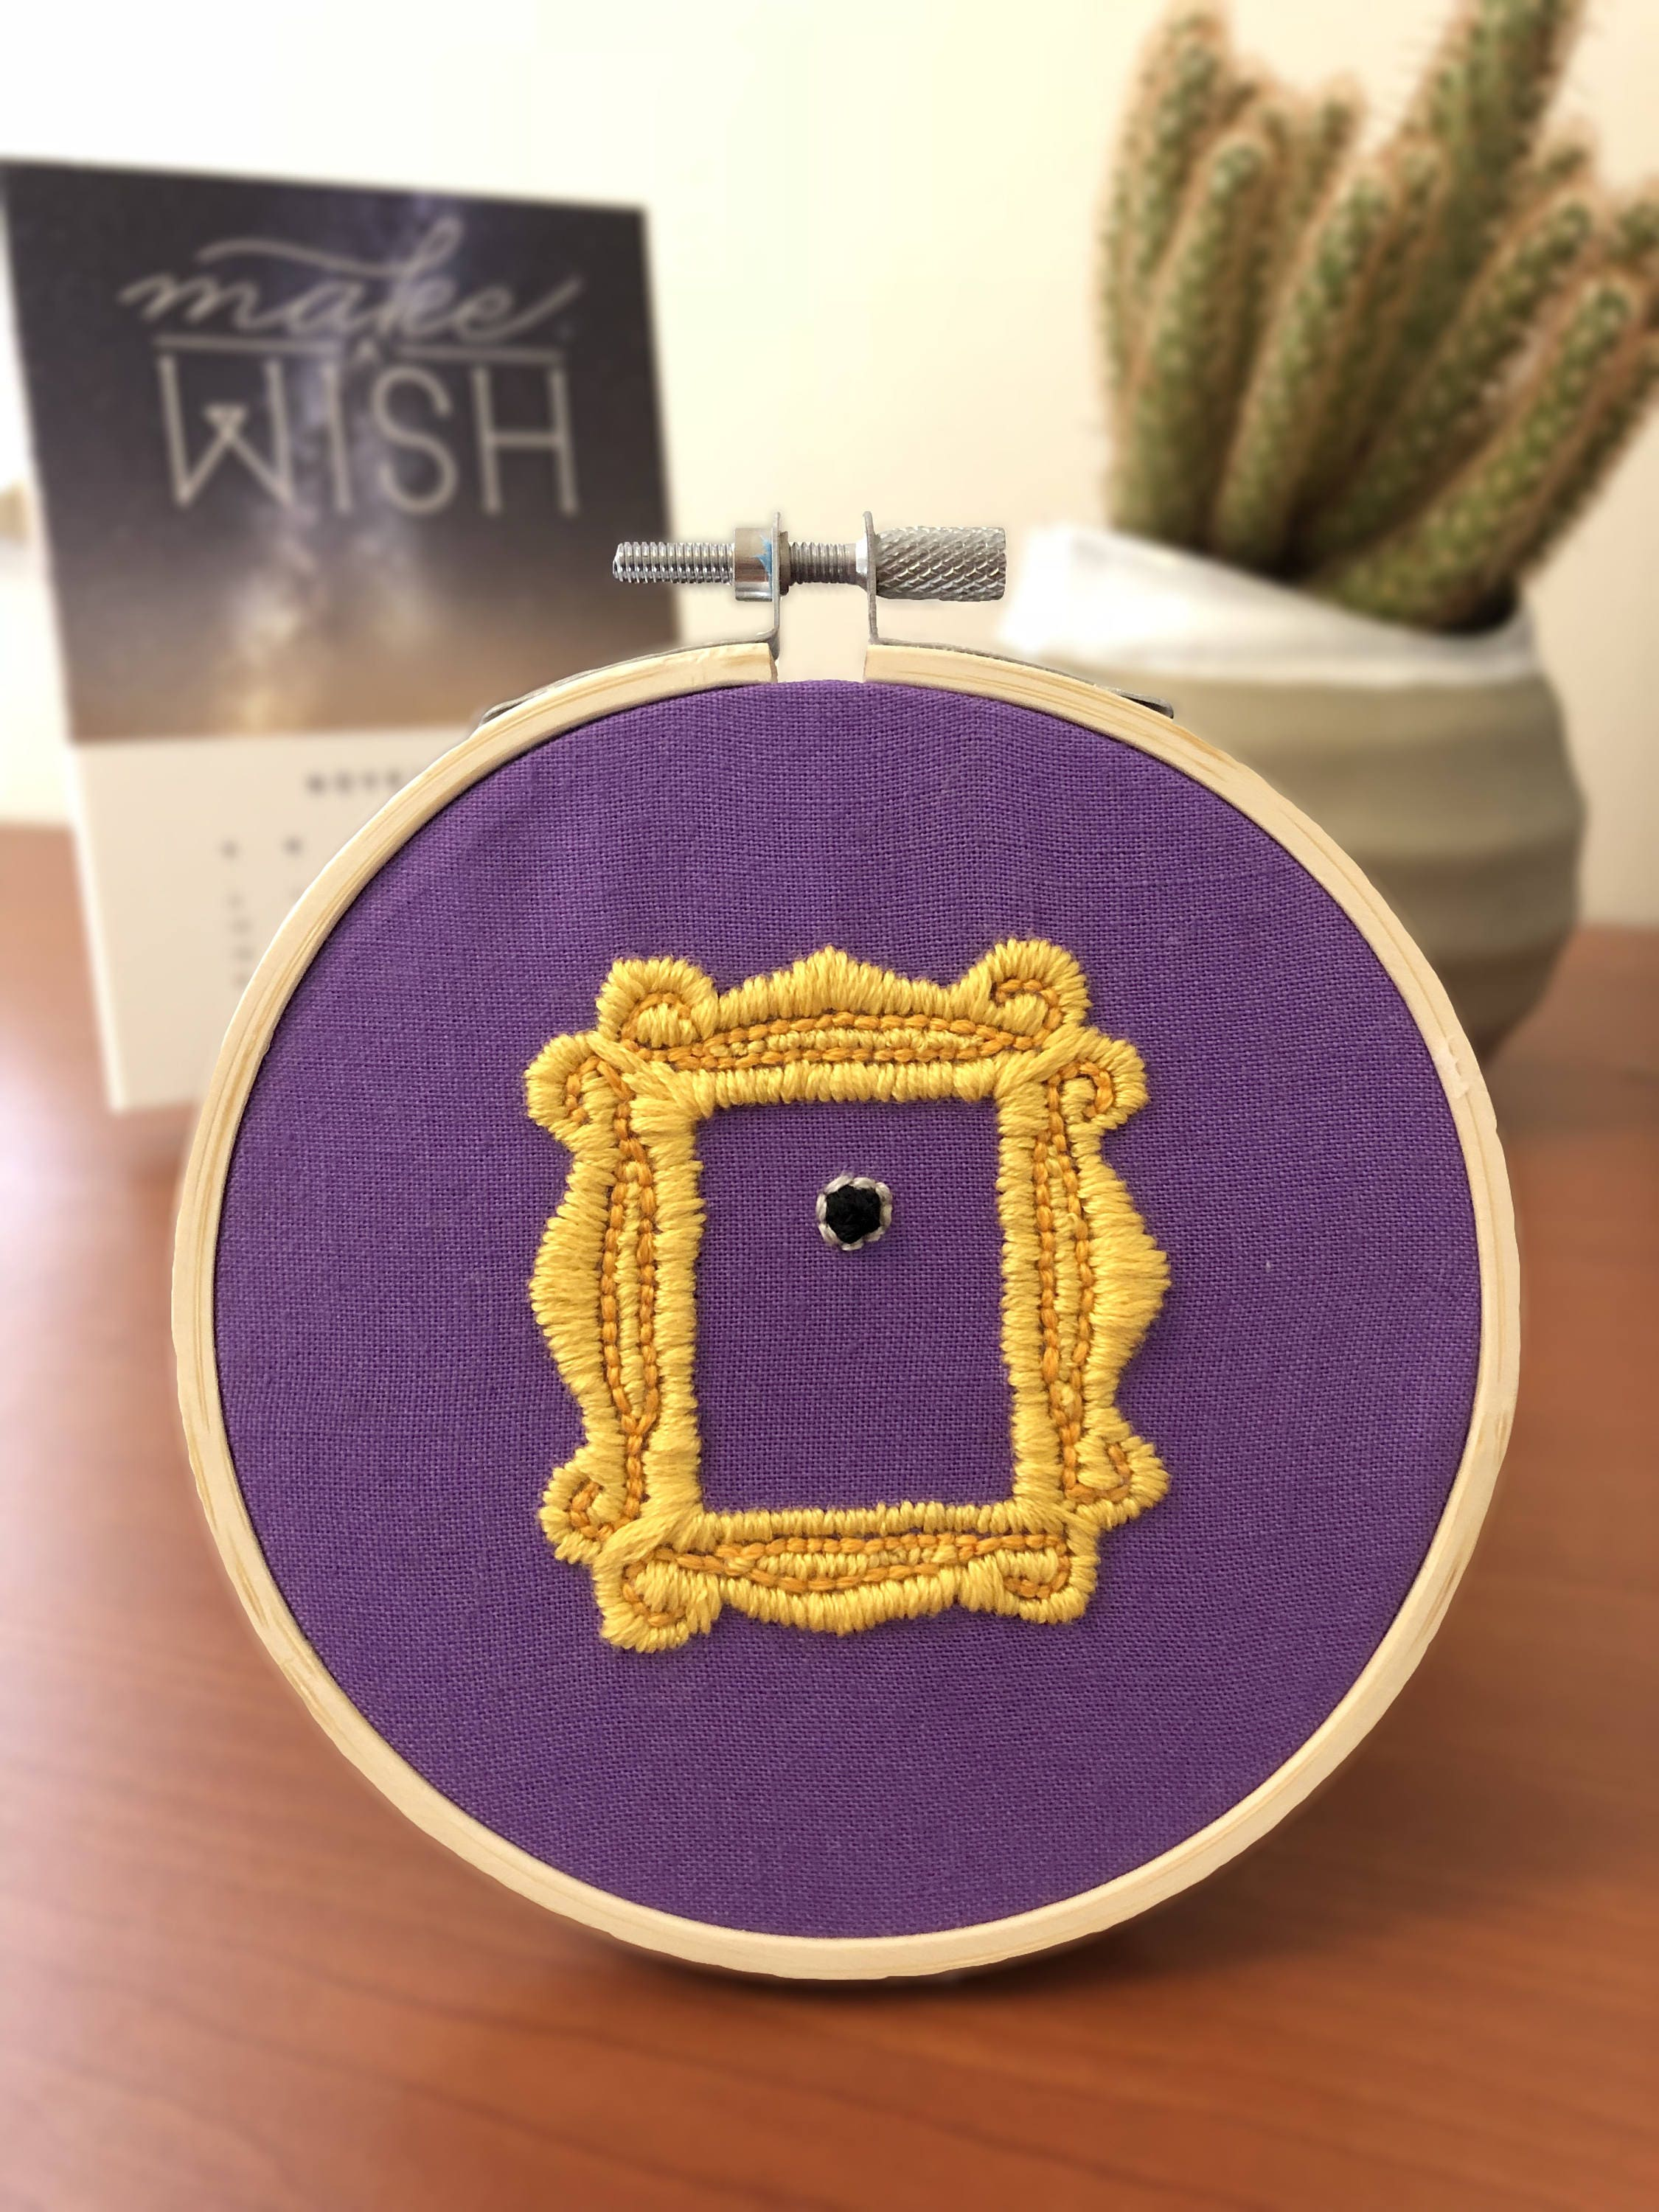 Friends TV Show peephole frame 4in embroidery hoop